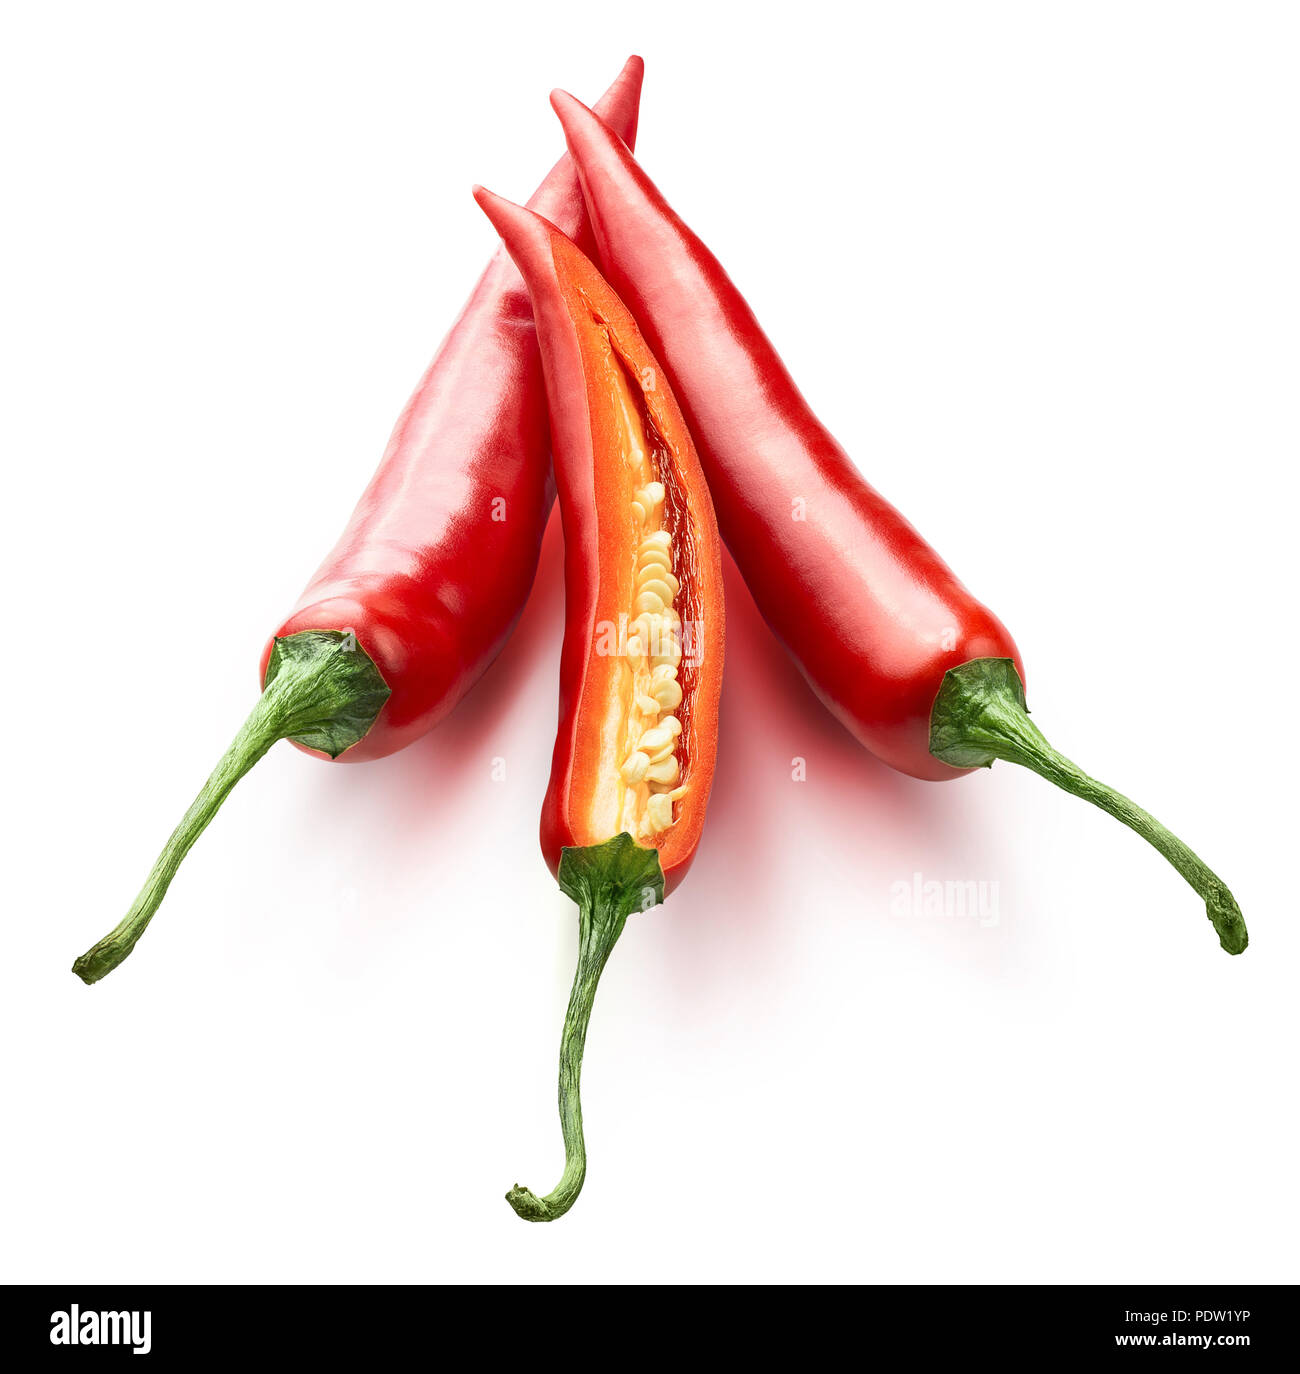 Red hot chili peppers one split isolated on white background as package design element - Stock Image